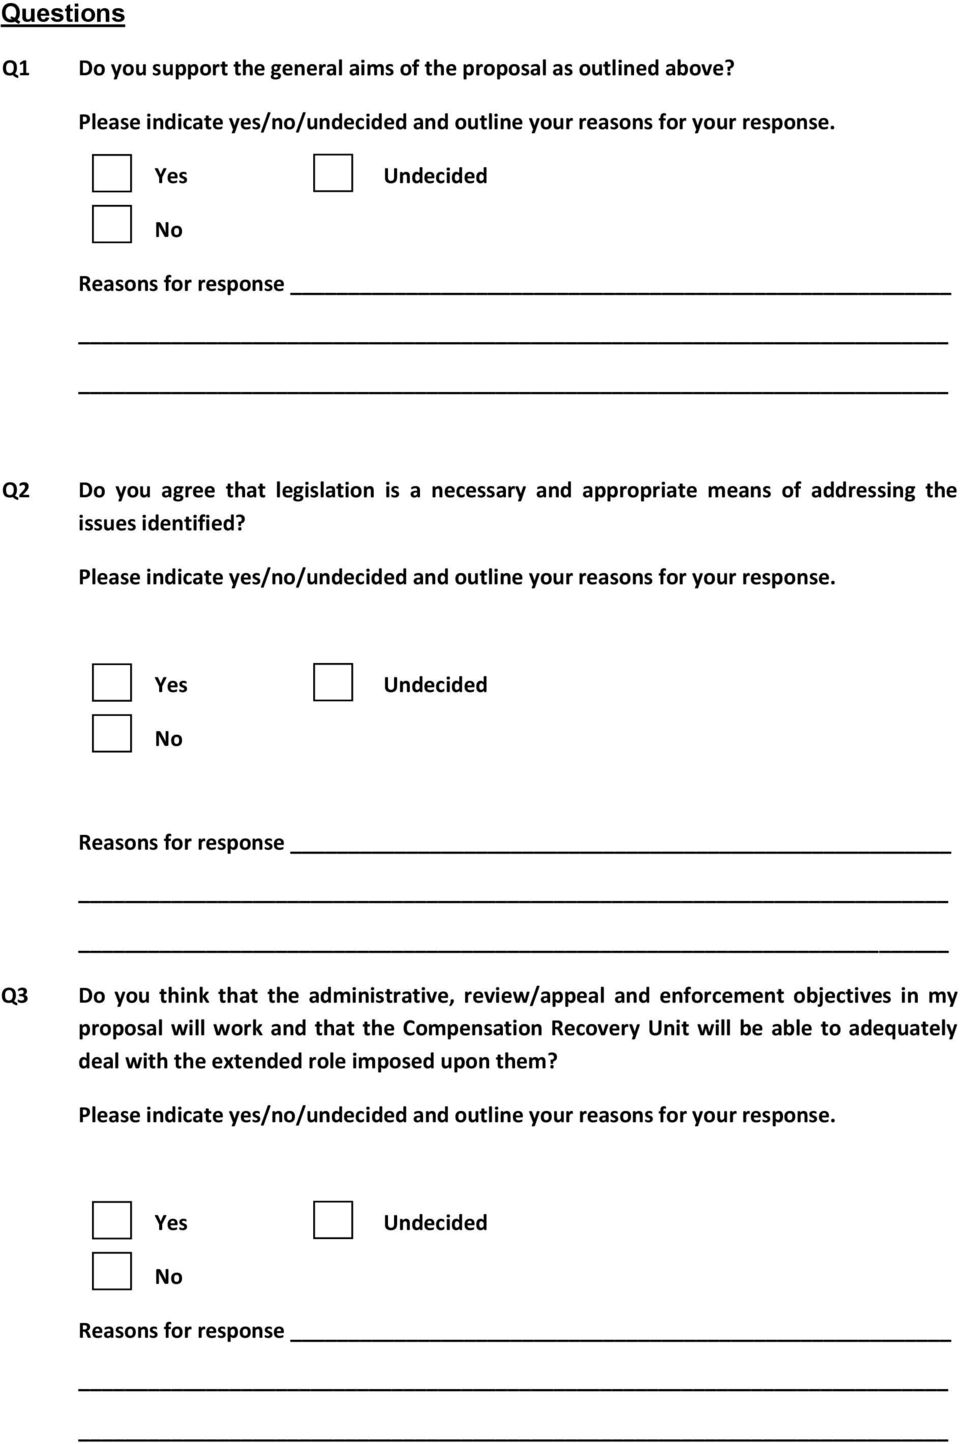 Please indicate yes/no/undecided and outline your reasons for your response.